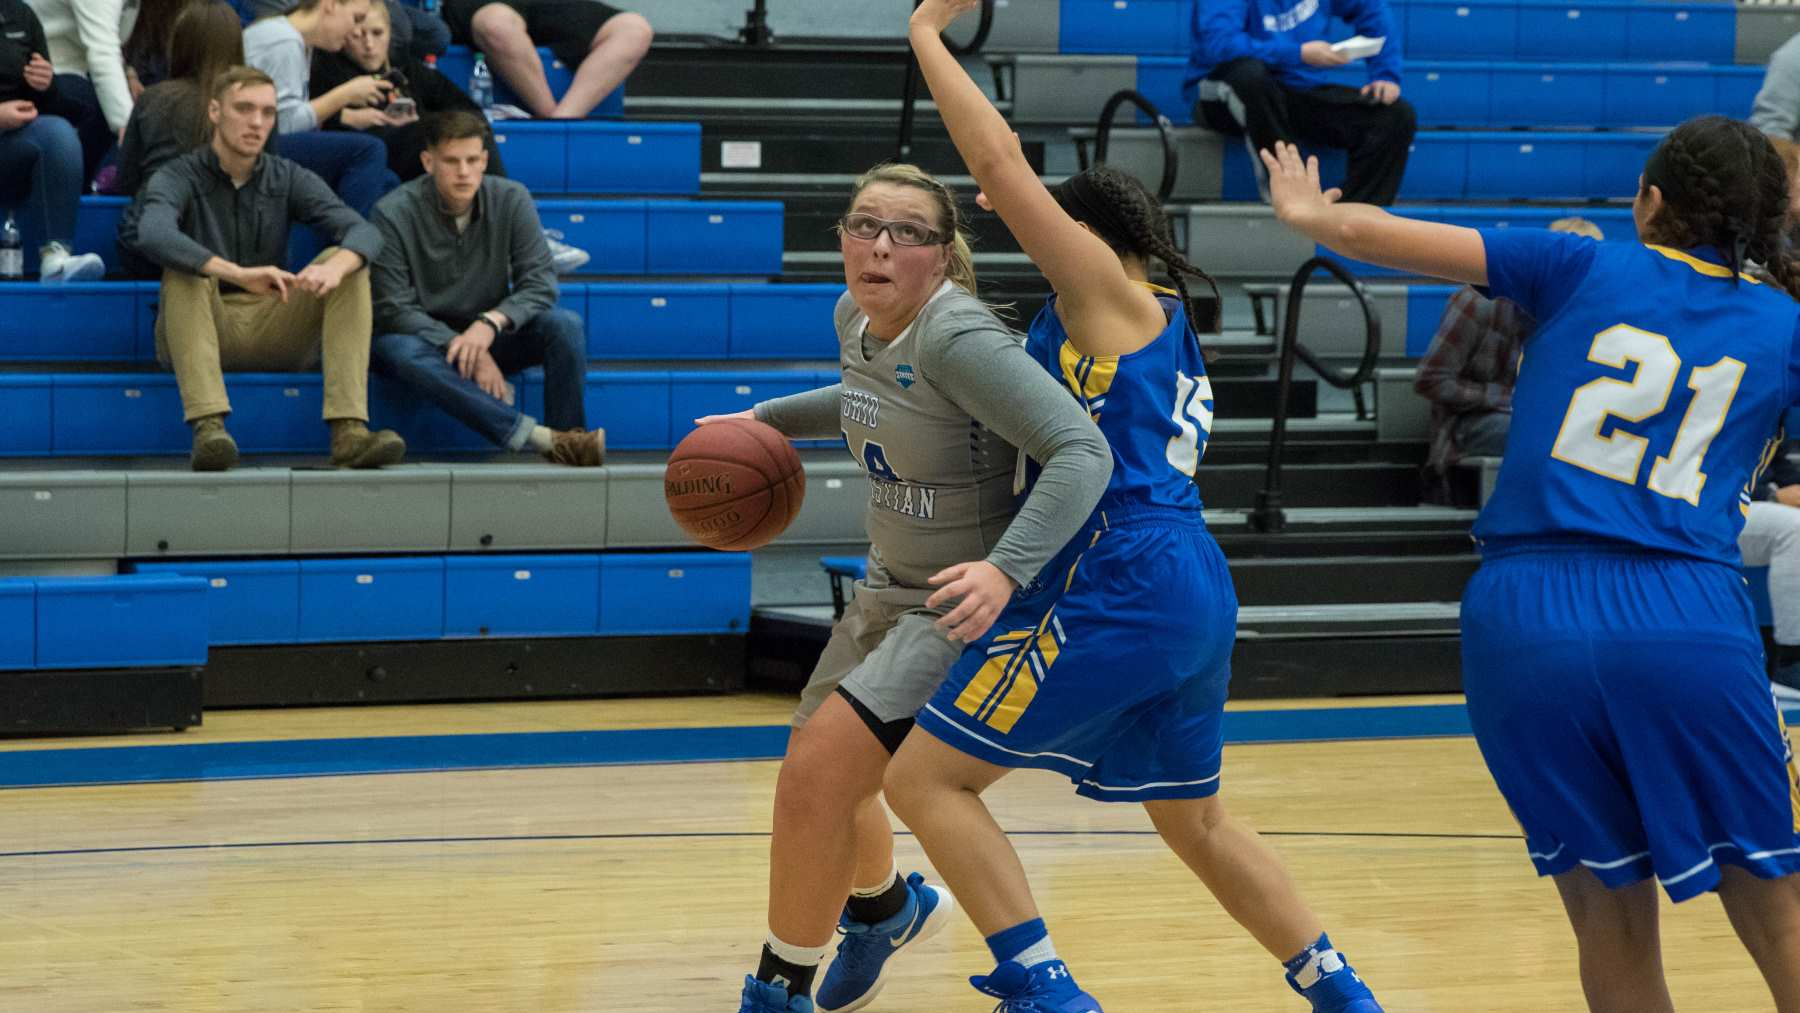 Lady Trailblazers Can't Slow Stille In Loss To Carlow image